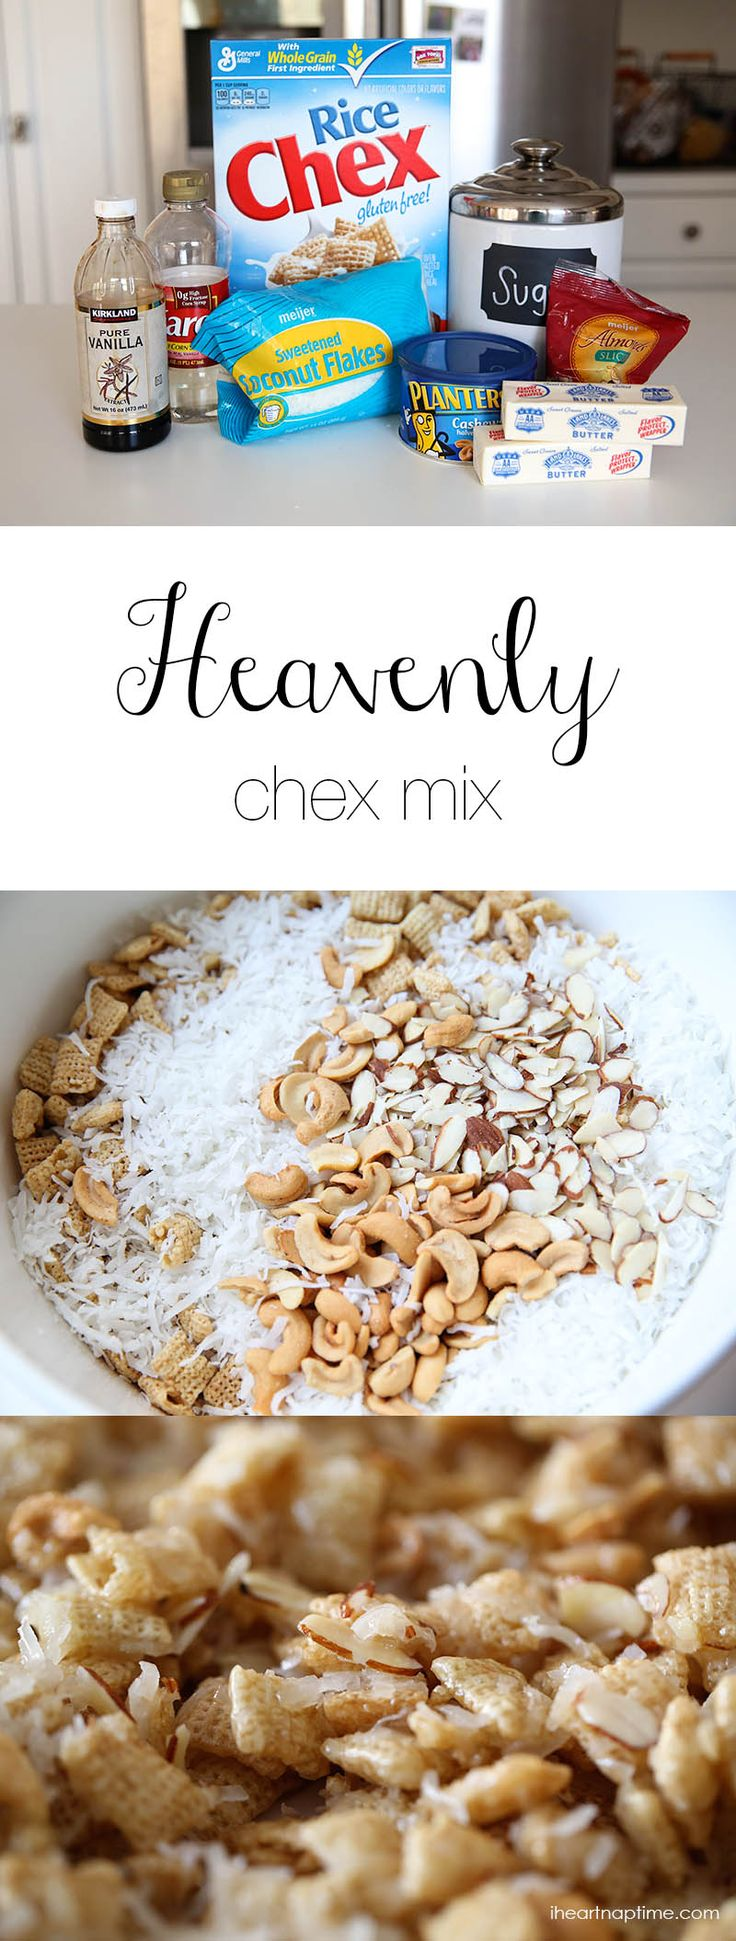 Heavenly chex mix ...the perfect Christmas treat!